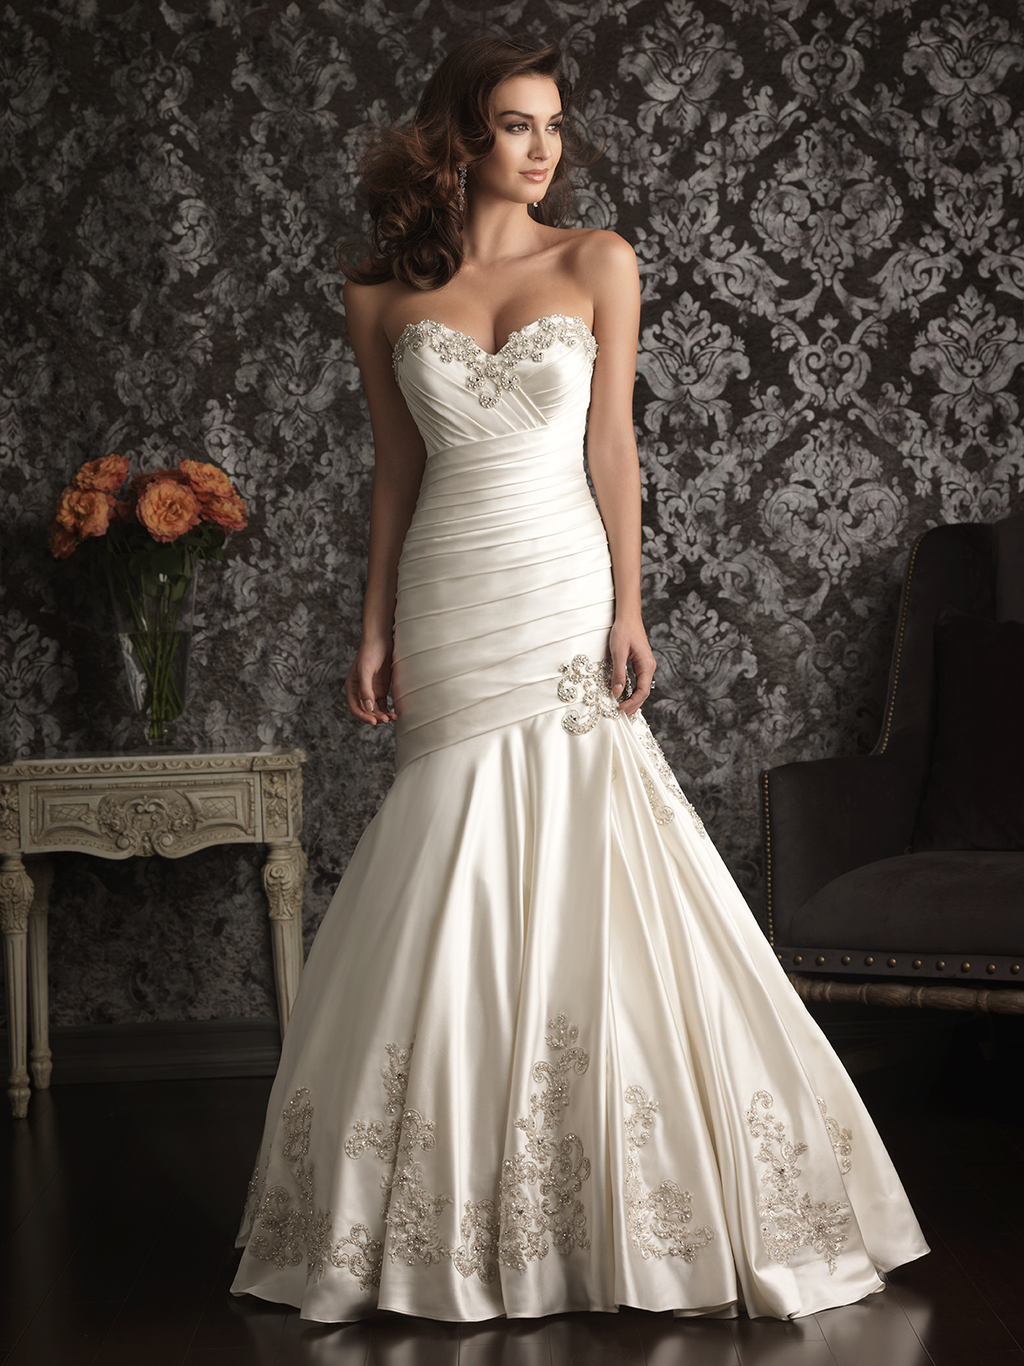 Allure-bridals-wedding-dress-bridal-gown-allure-collection-sweetheart-9024f.full